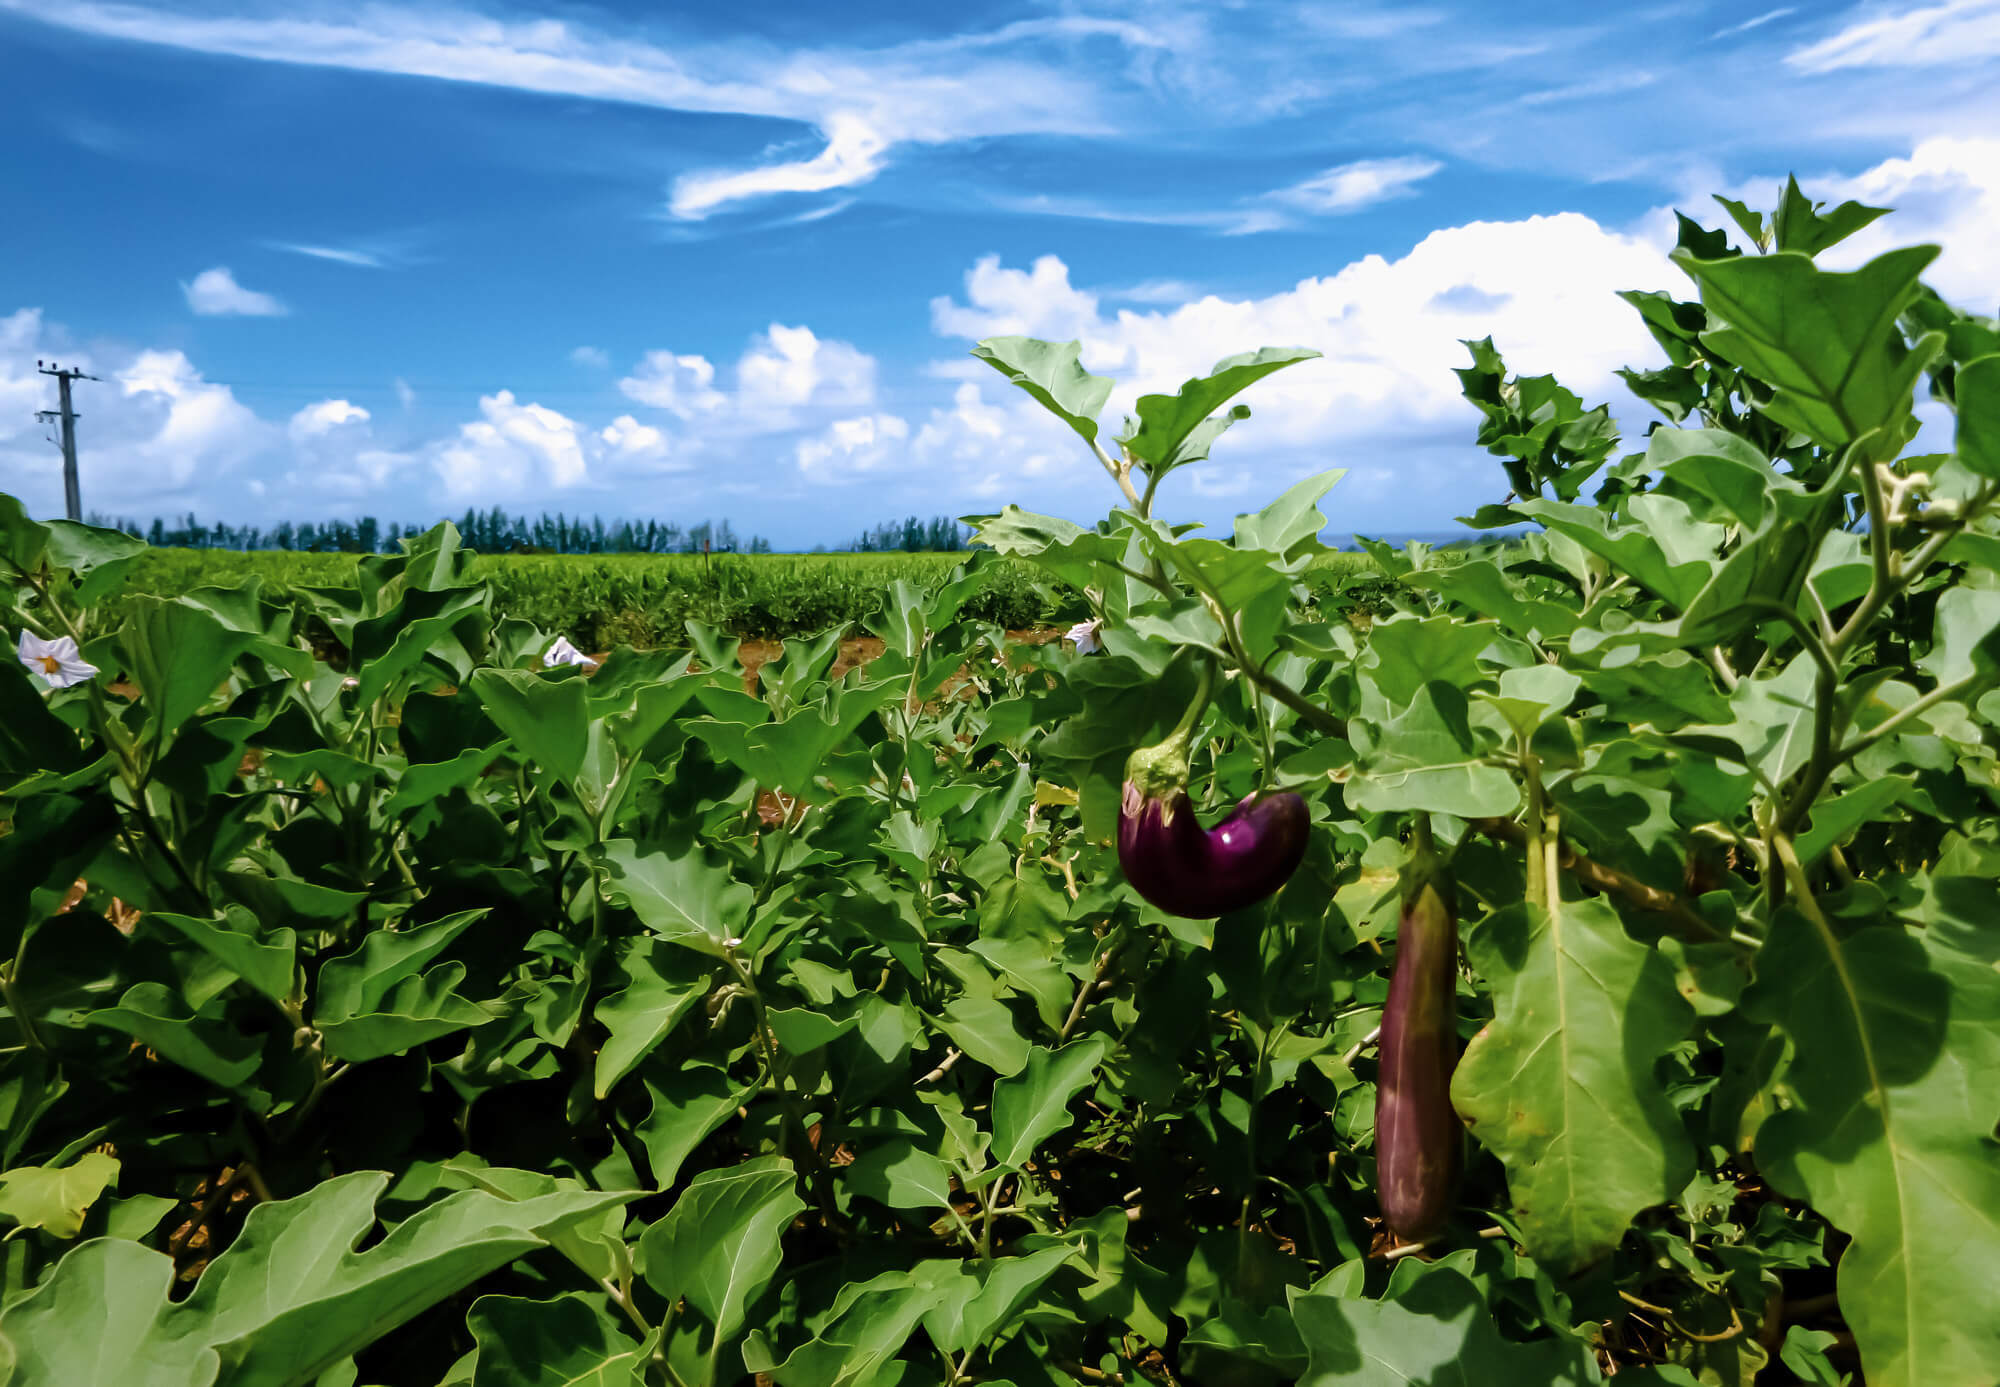 Photographing eggplant crops while sightseeing in Mauritius